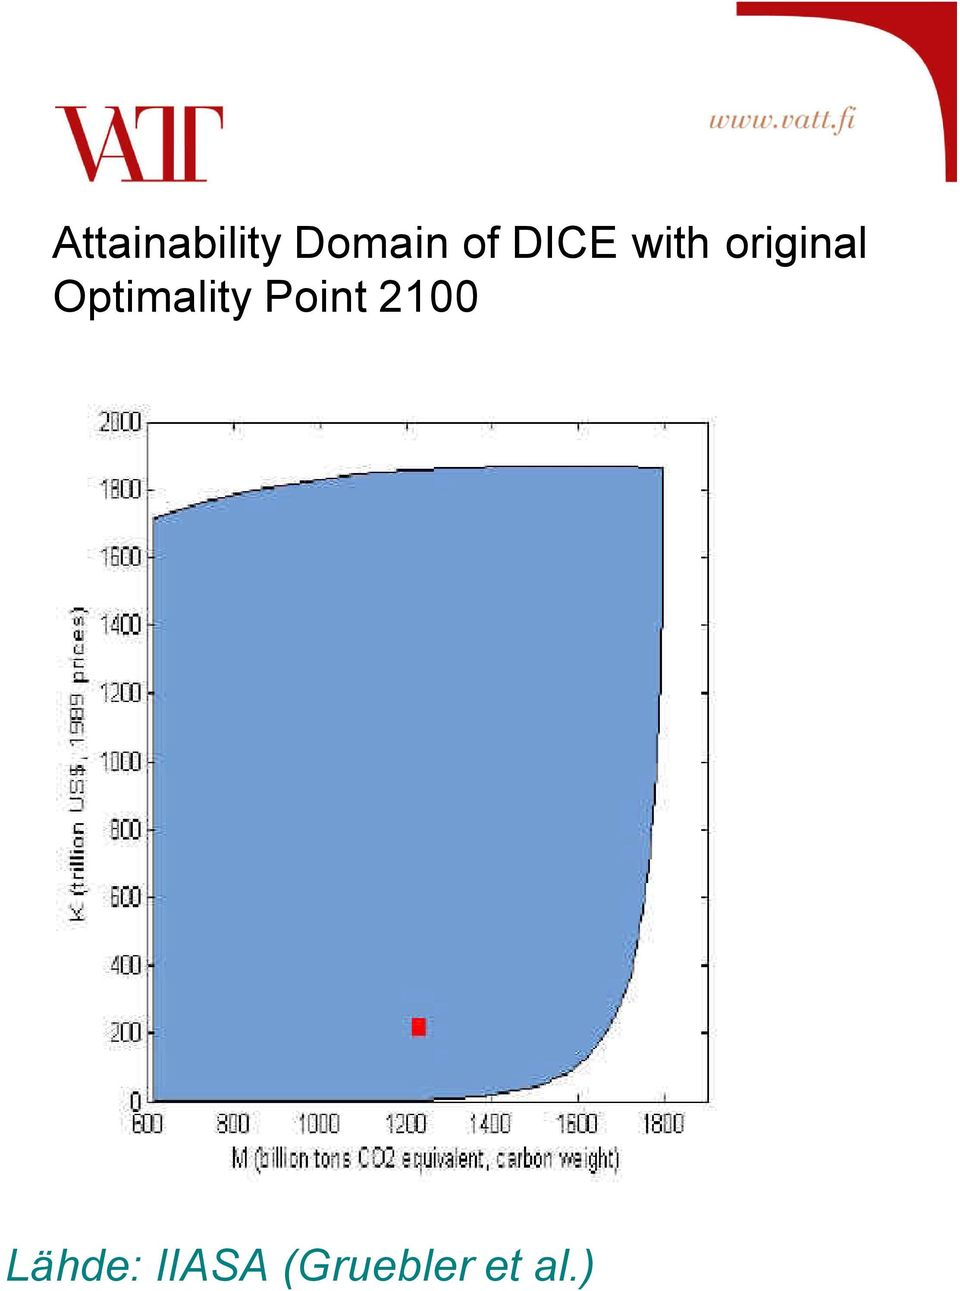 Optimality Point 2100